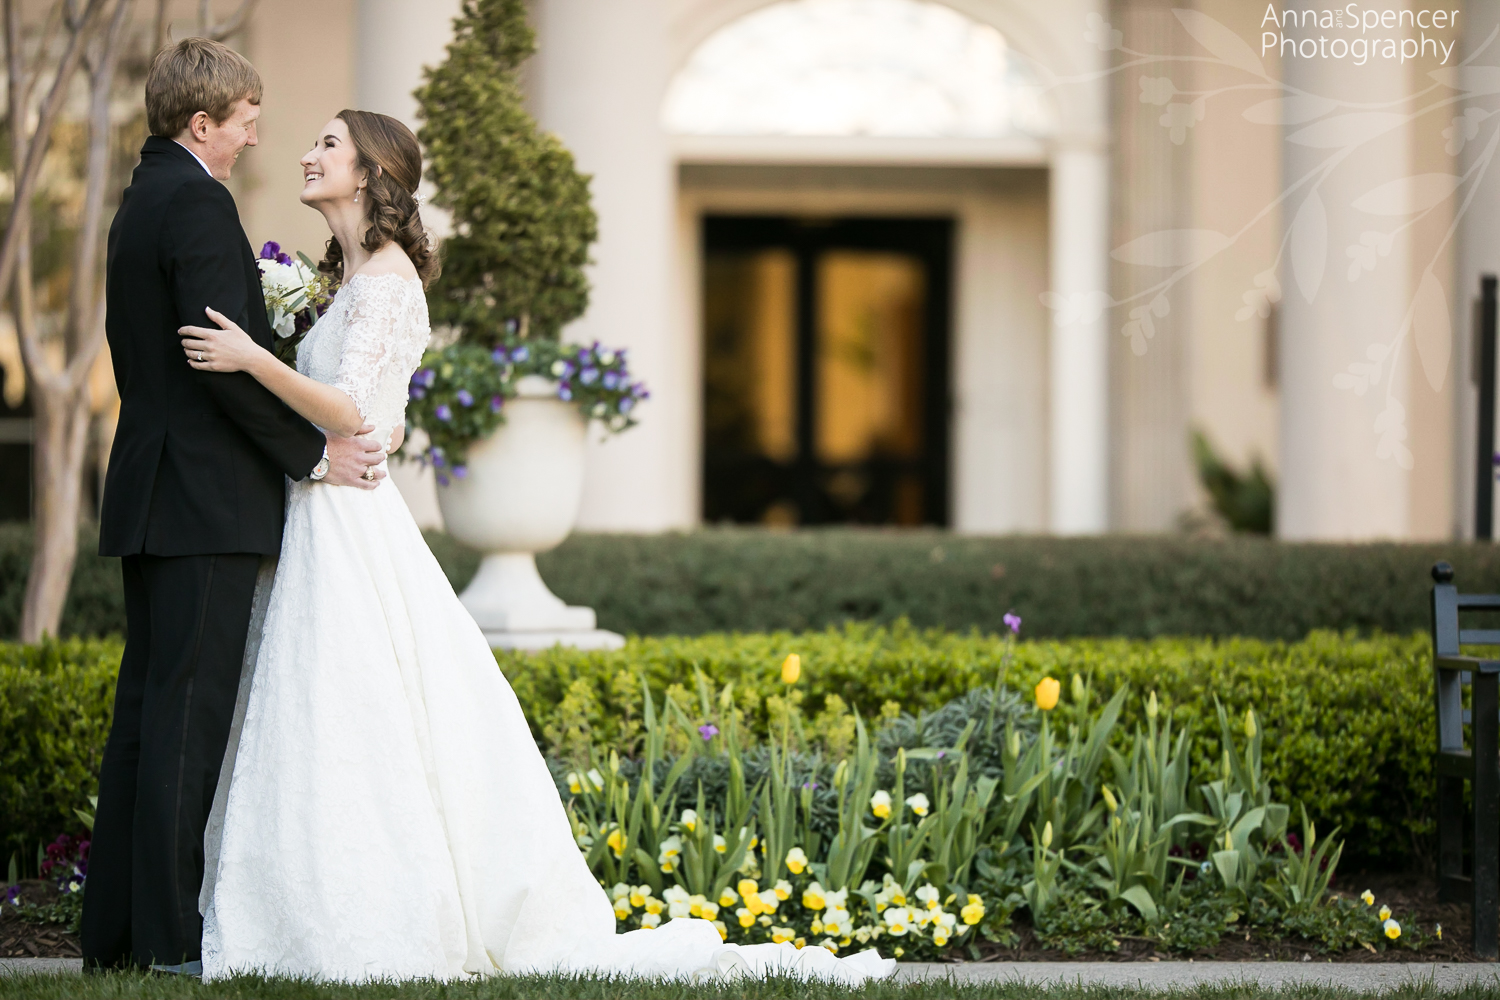 Bride and grooms first look before their wedding at the Atlanta Biltmore